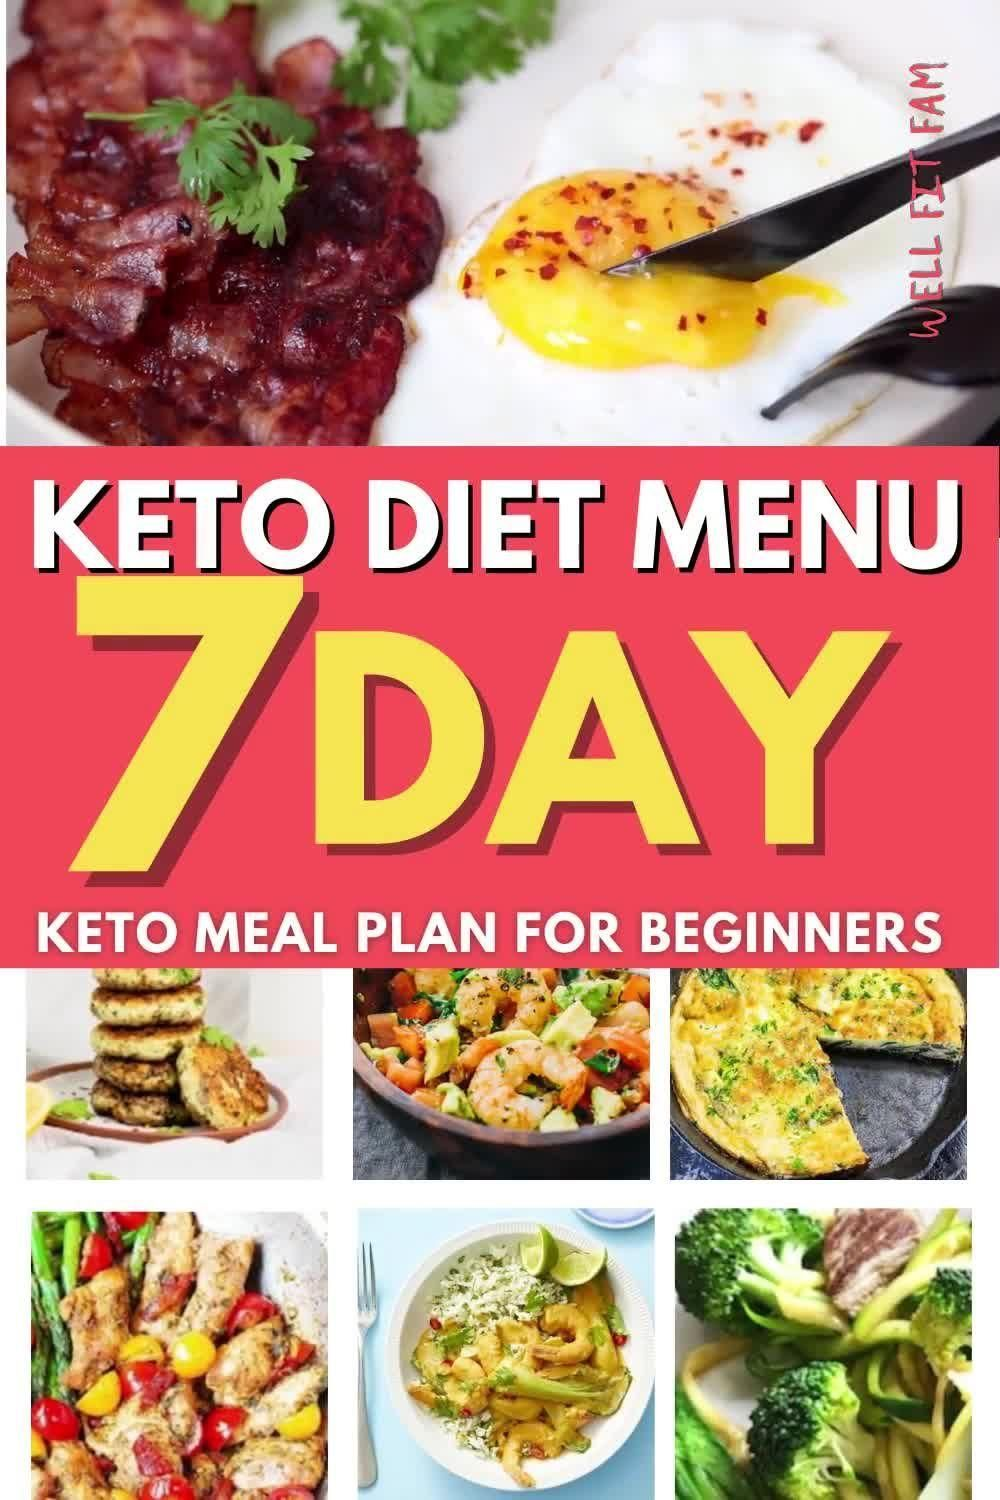 7-Day Keto Diet Meal Plan for Beginners To Lose Weight [W/ Grocery List] -   18 meal prep recipes for weight loss keto ideas